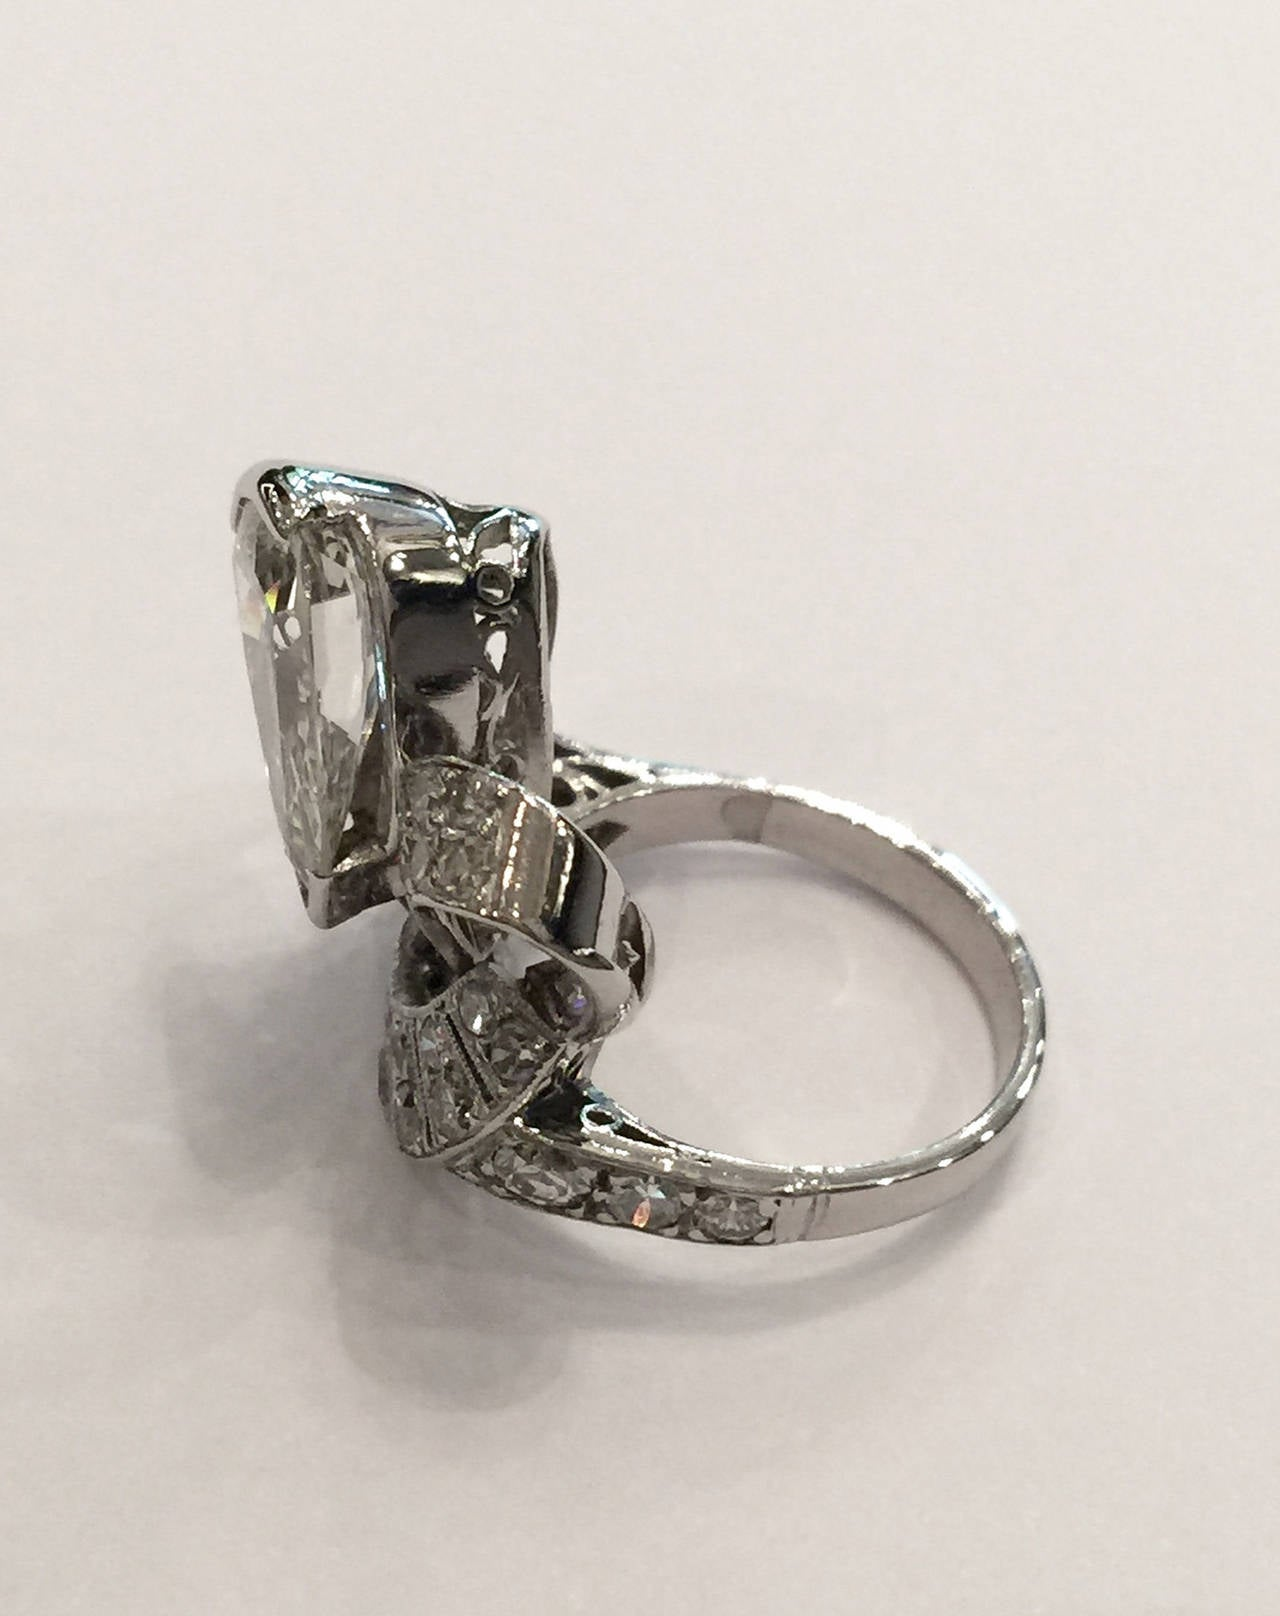 1960s diamond gold platinum ring for sale at 1stdibs for What is platinum jewelry made of